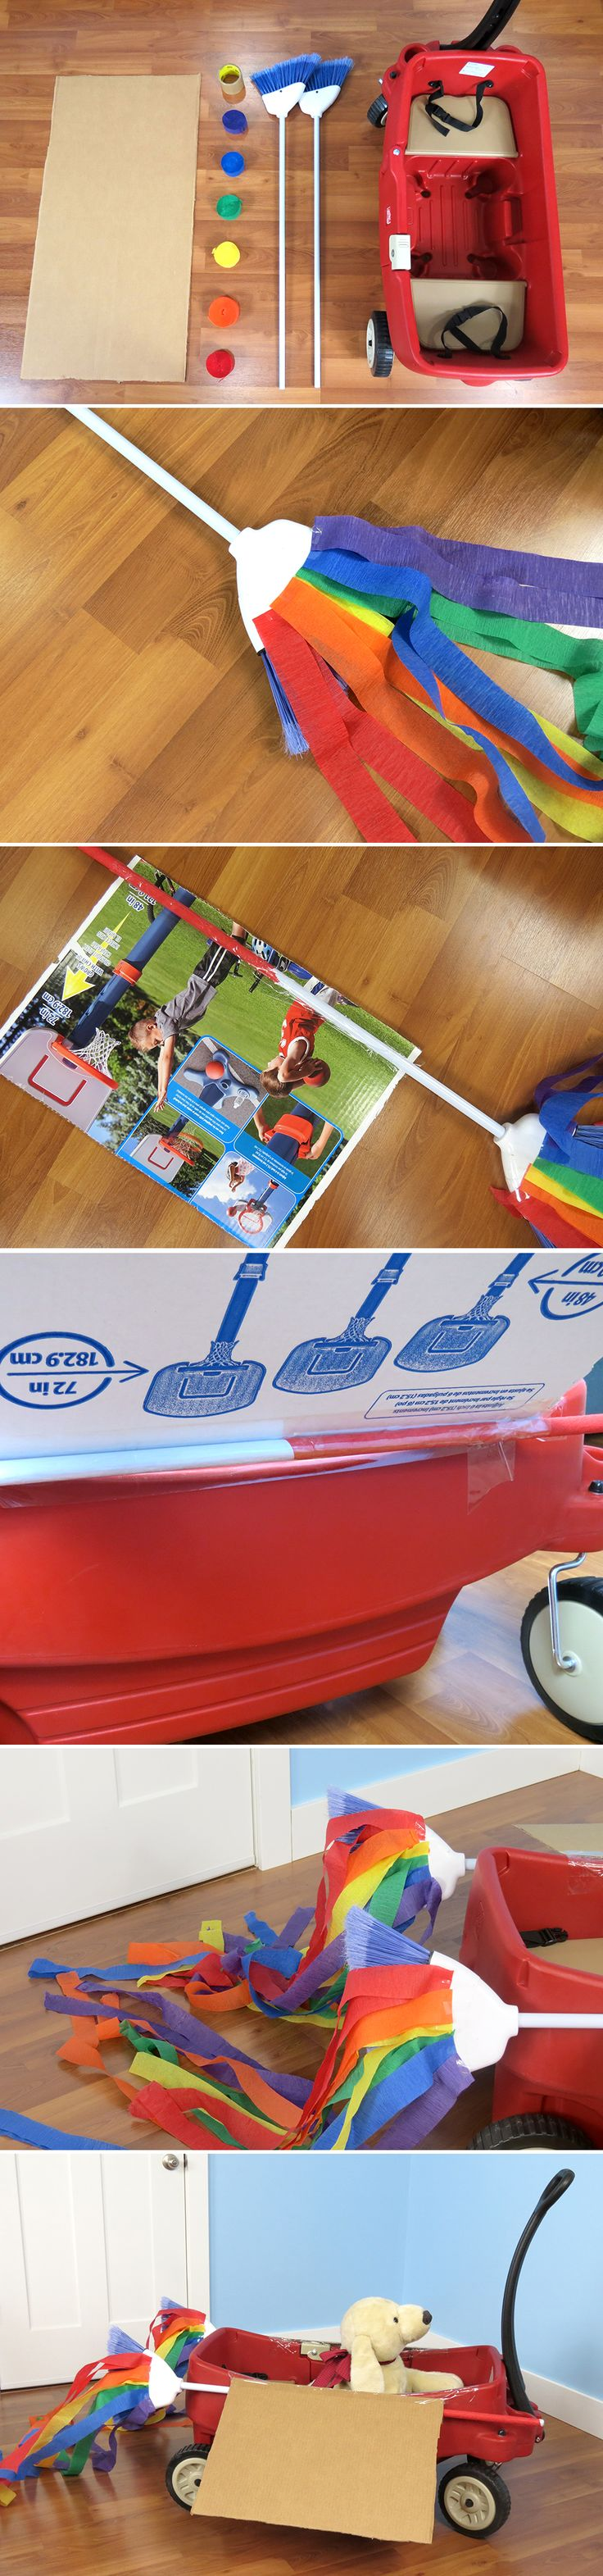 Create Your Own Rocket Ship from a Step2 Wagon - Inspired by the Inside Out character Bing Bong